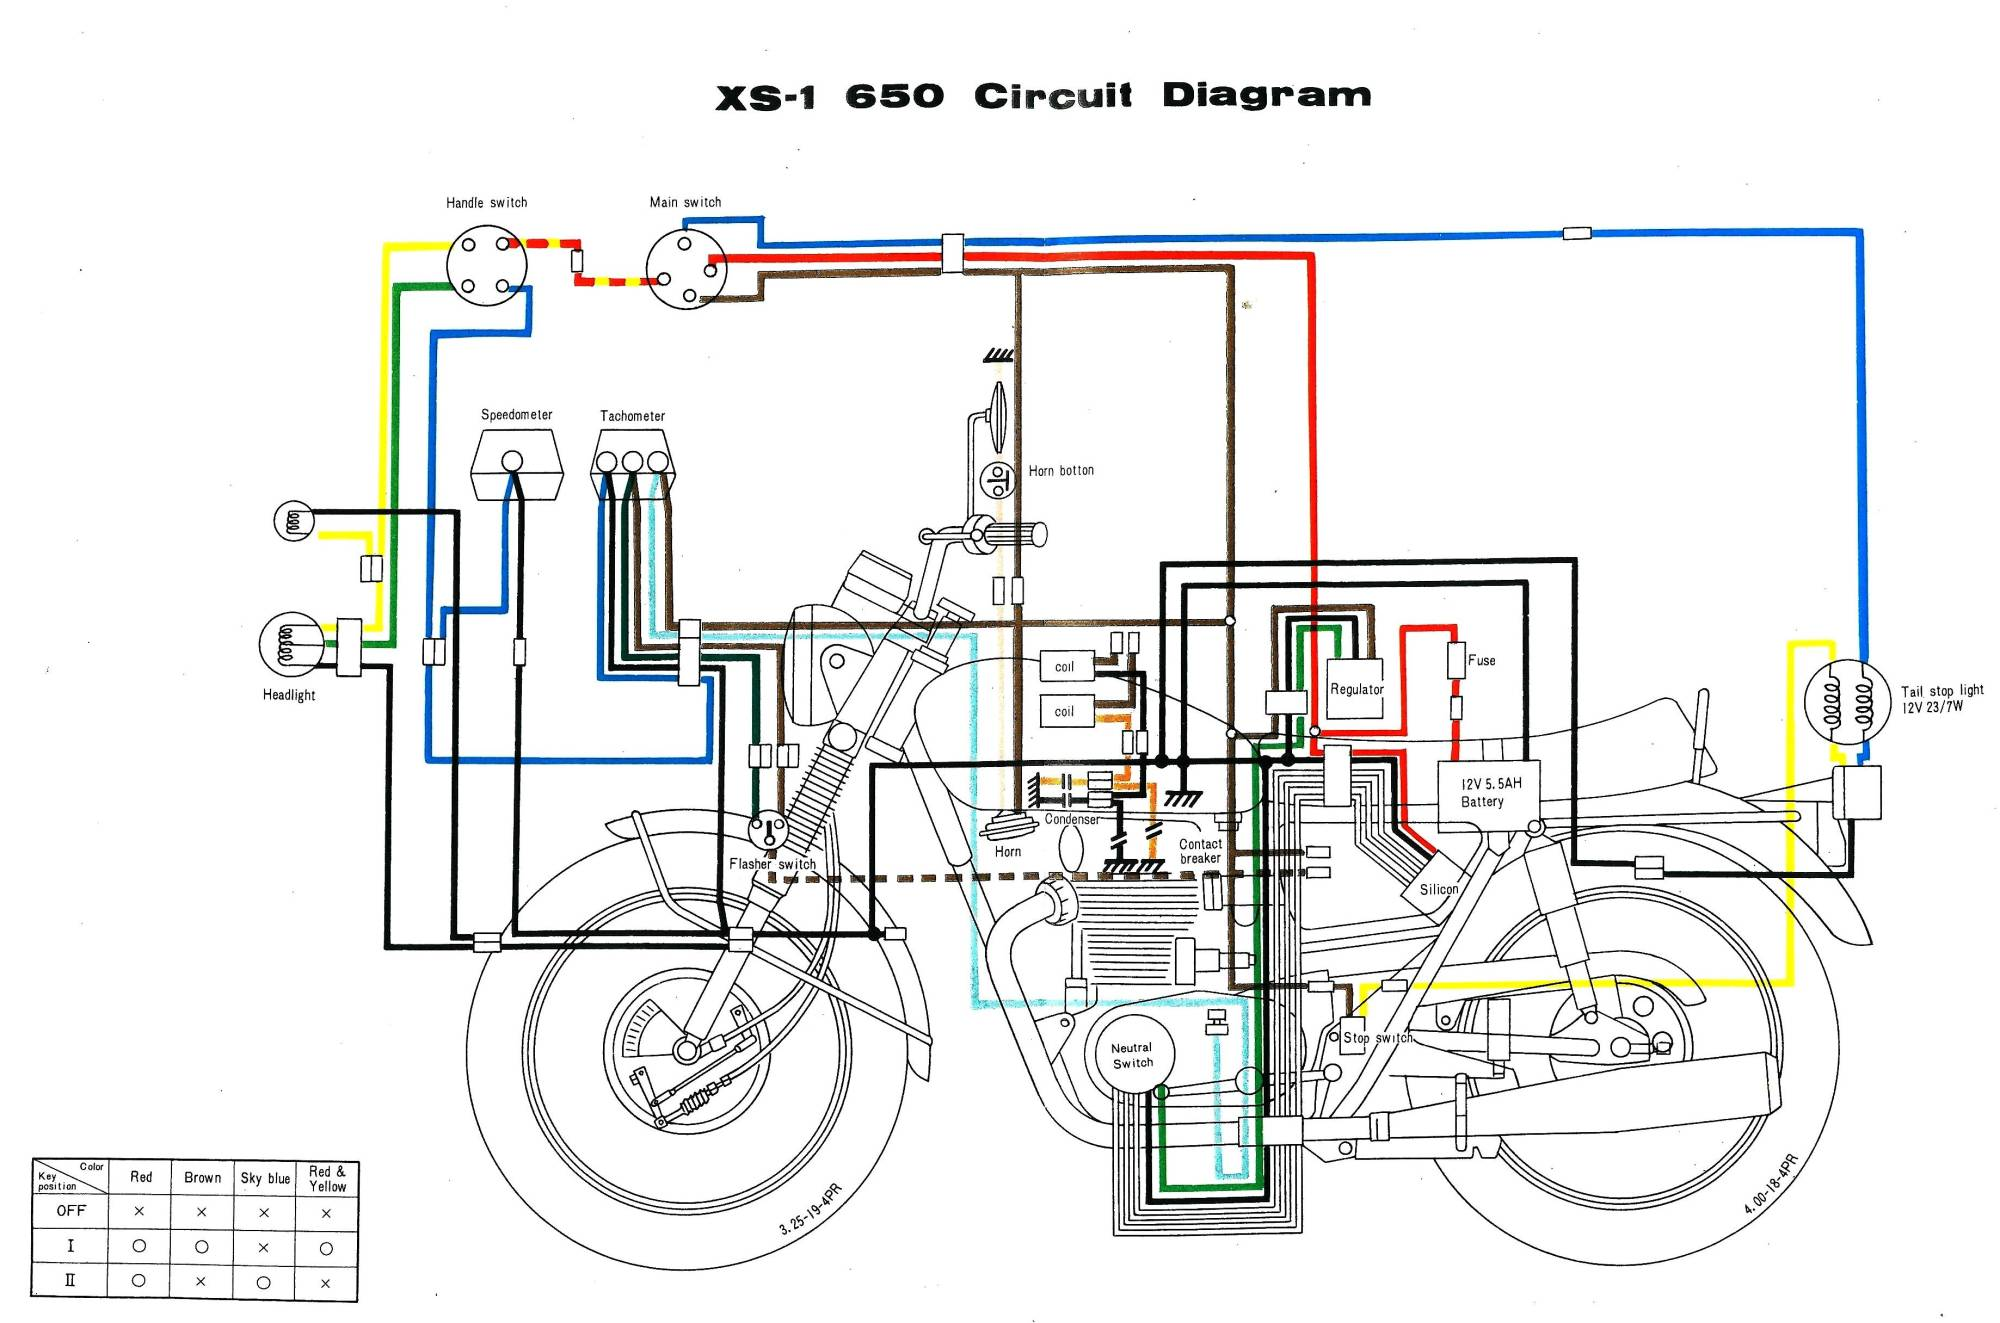 hight resolution of 1978 xs650 wiring diagram schematic wiring diagram third level rh 15 18 14 jacobwinterstein com 1977 triumph bonneville 1972 yamaha xs650